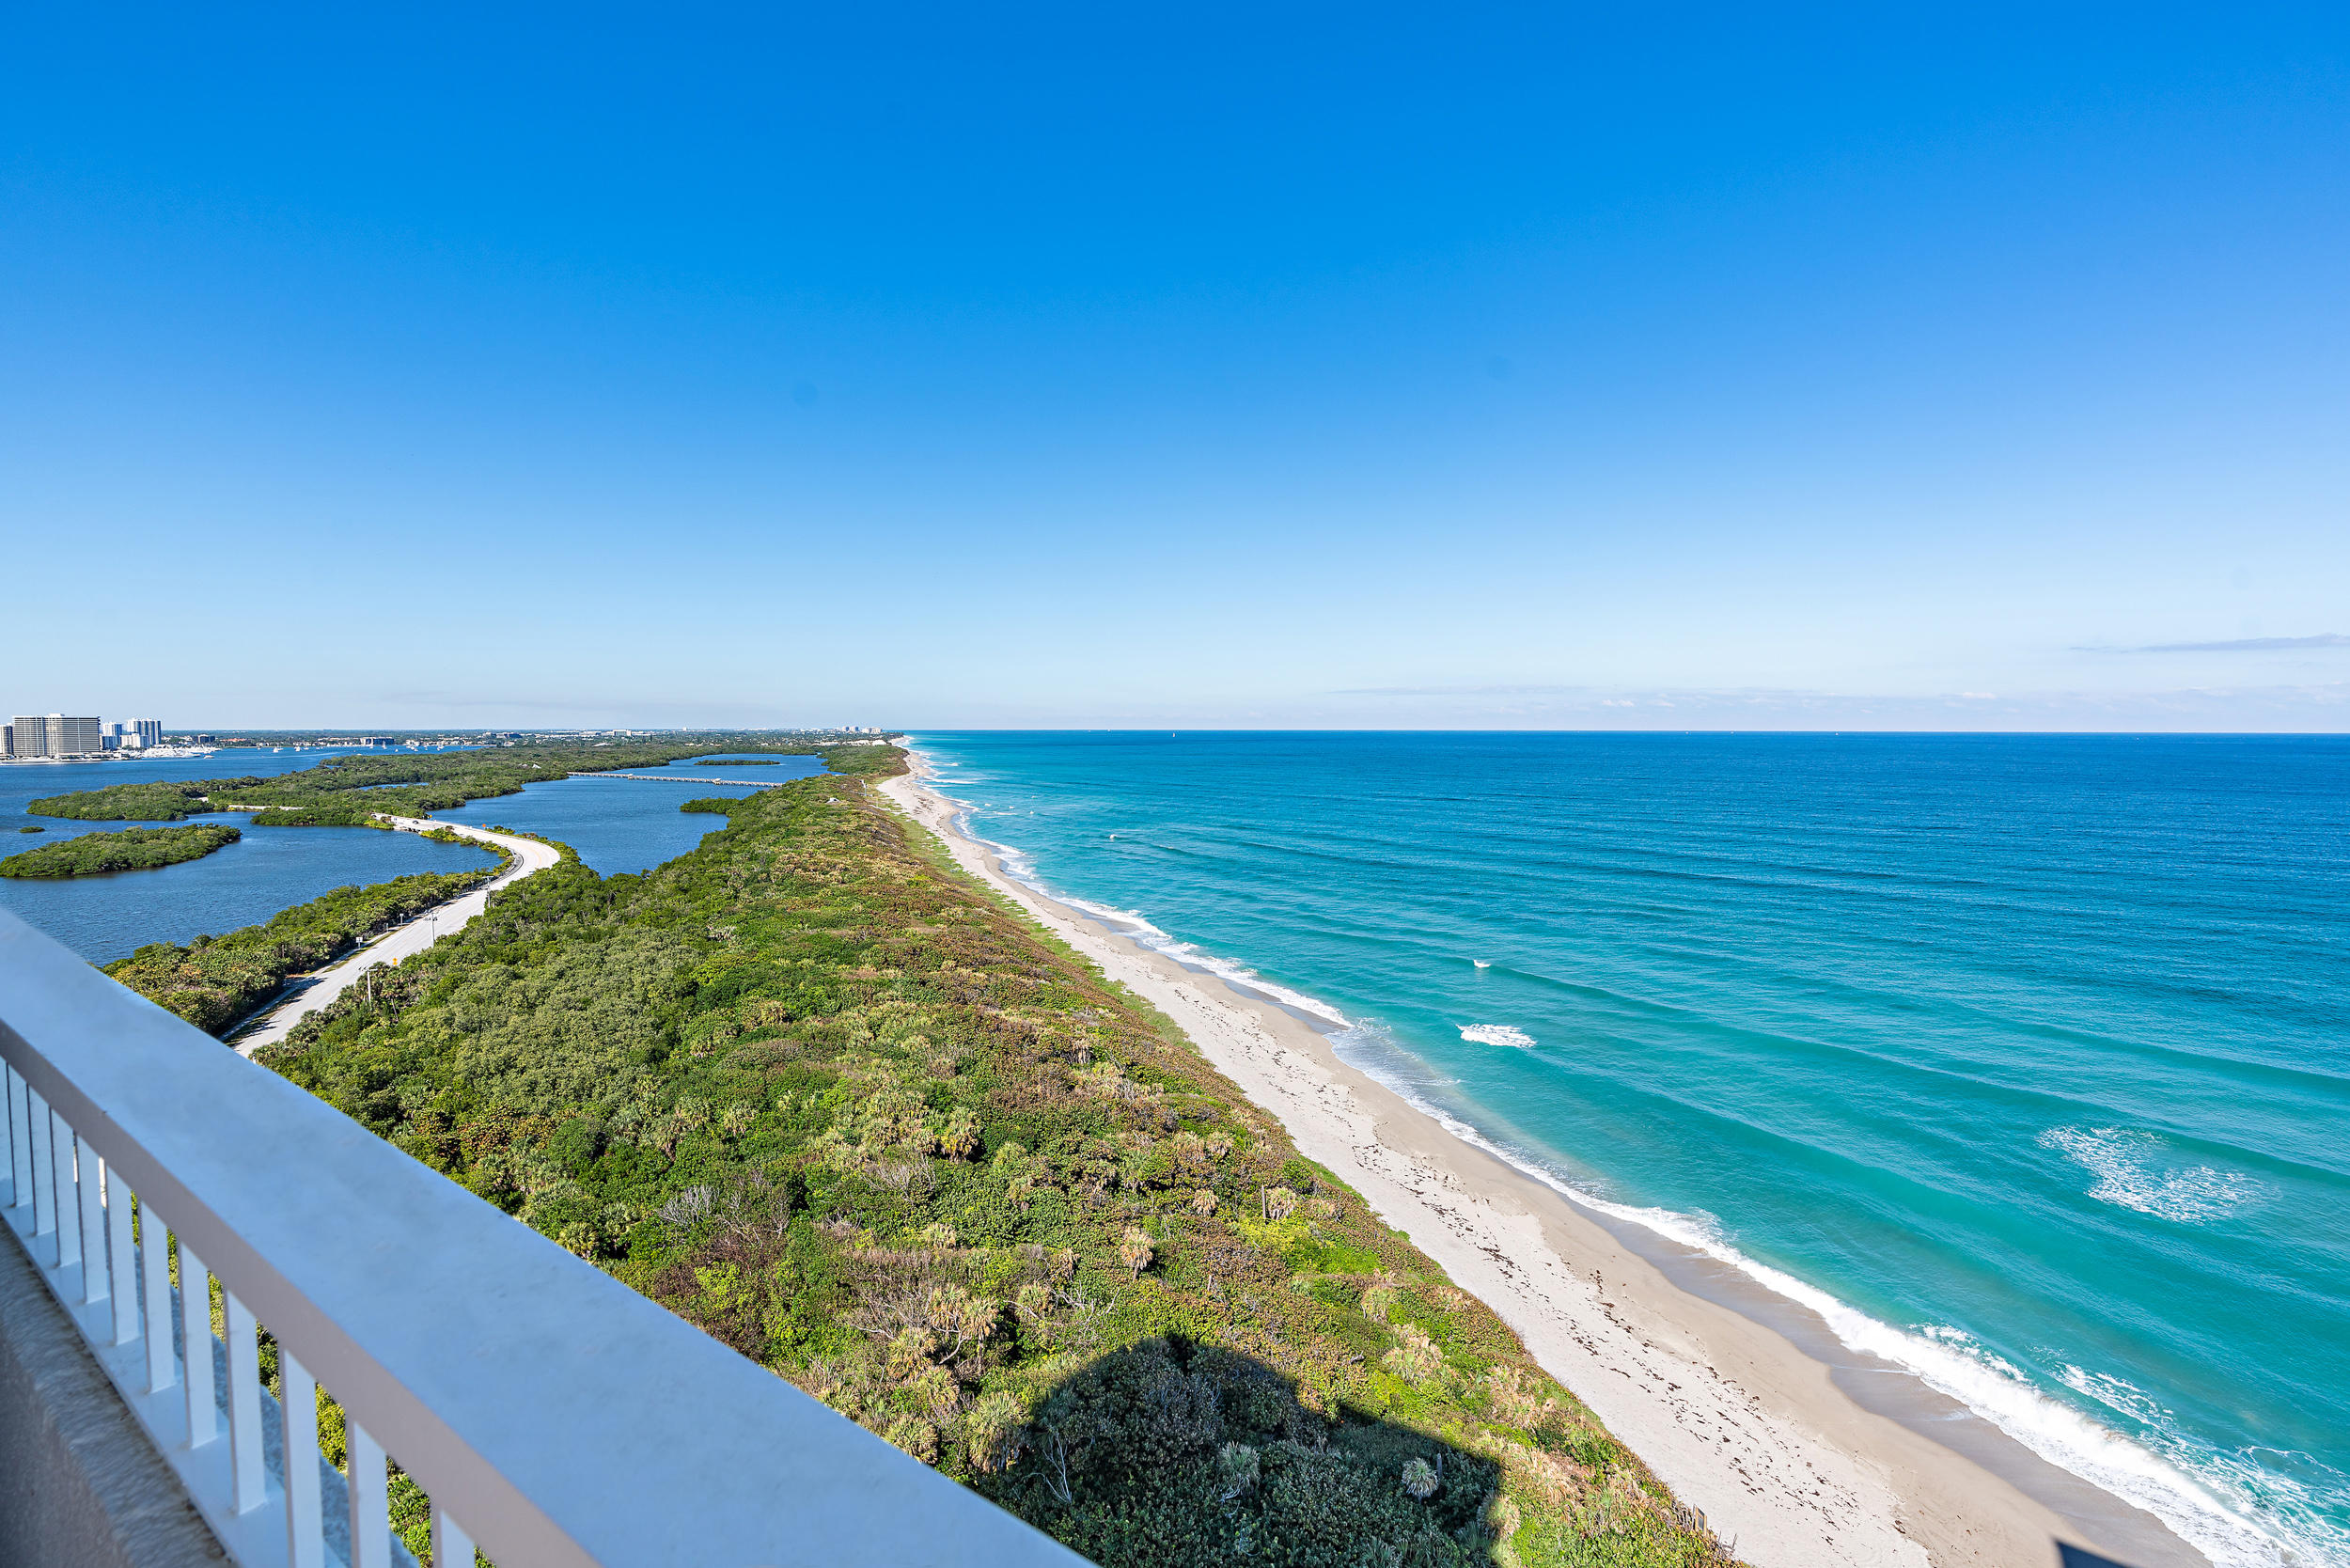 DIRECT OCEANFRONT CONDO with Unobstructed Panoramic Views Surrounded by Gorgeous Blue & Turquoise Waters Overlooking the Ocean to the East and John MacArthur Park just North with Incredible Water Views from Every Room! This direct east/southeast residence has floor to ceiling IMPACT GLASS windows and slider doors making it light and bright! Condo is ready to be designed with your own personal touch. Relax watching the boats cruise by while enjoying dining & drinks on your terrace with open views everywhere! This property possesses some of the best views on Singer Island! Property is easy to view, call today for your private showing! Water Glades residents have access to many amenities including private beach frontage, two heated pools, tennis courts, lush landscaped. See Supplement... recreation deck with an oceanfront owner's lounge with gorgeous views and plenty of space for entertaining. Each building has its own exercise room, library and extra storage. Water Glades is a 24-hour manned gated community just adjacent to MacArthur Beach State Park and nature preserve.  This building boats some of the best views on Singer Island!